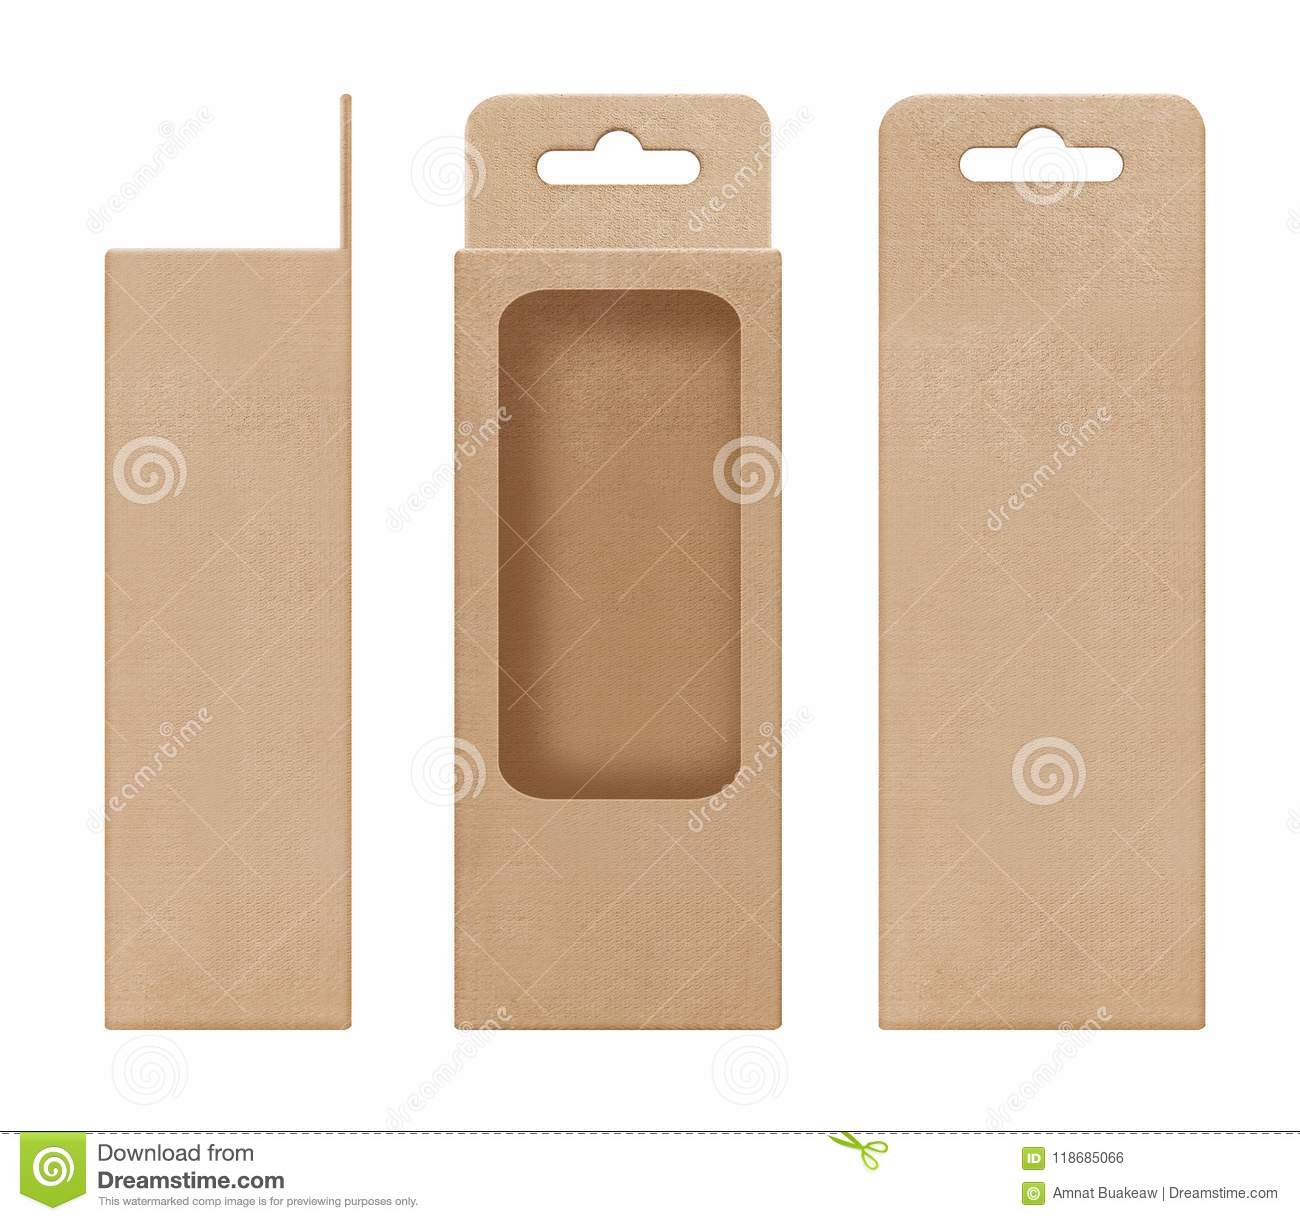 box packaging box brown for hanging cut out window shape open